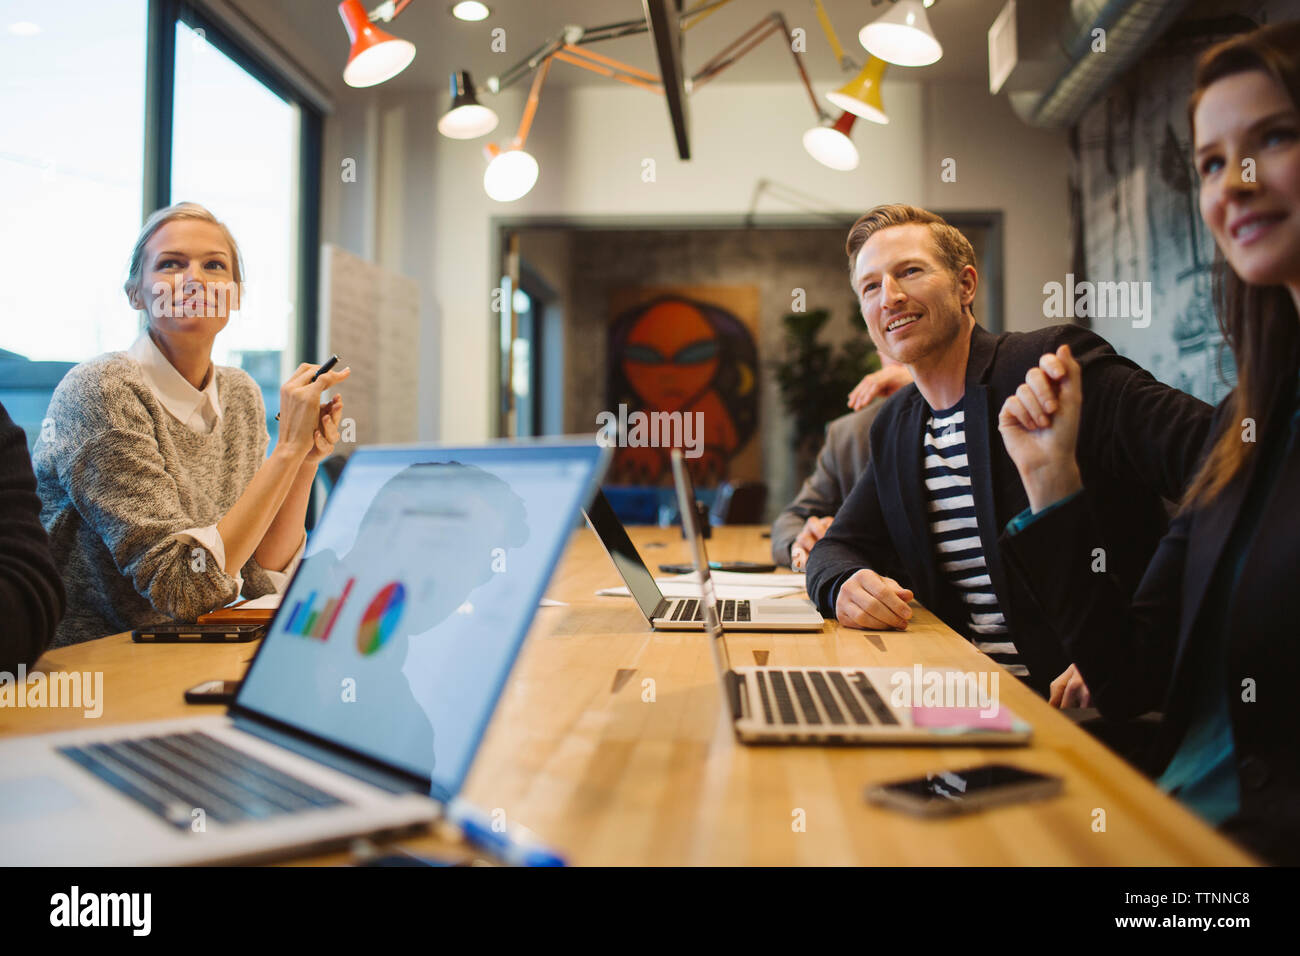 Business people in meeting at board room - Stock Image